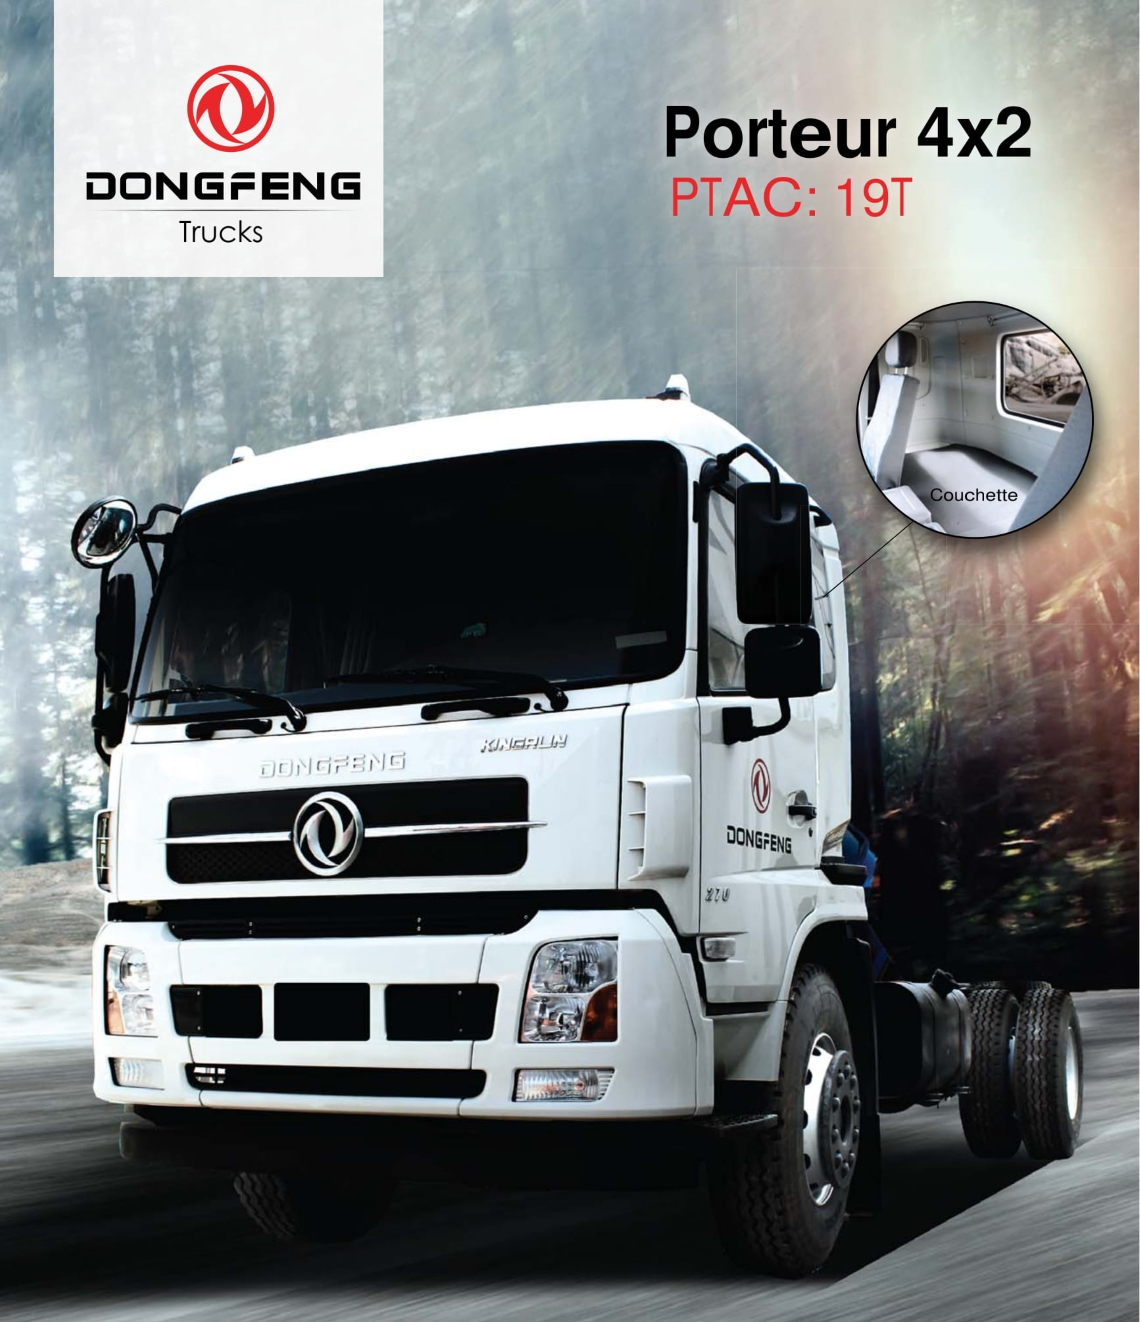 Prix camion Dongfeng Porteur 4×2 neuf Tunisie